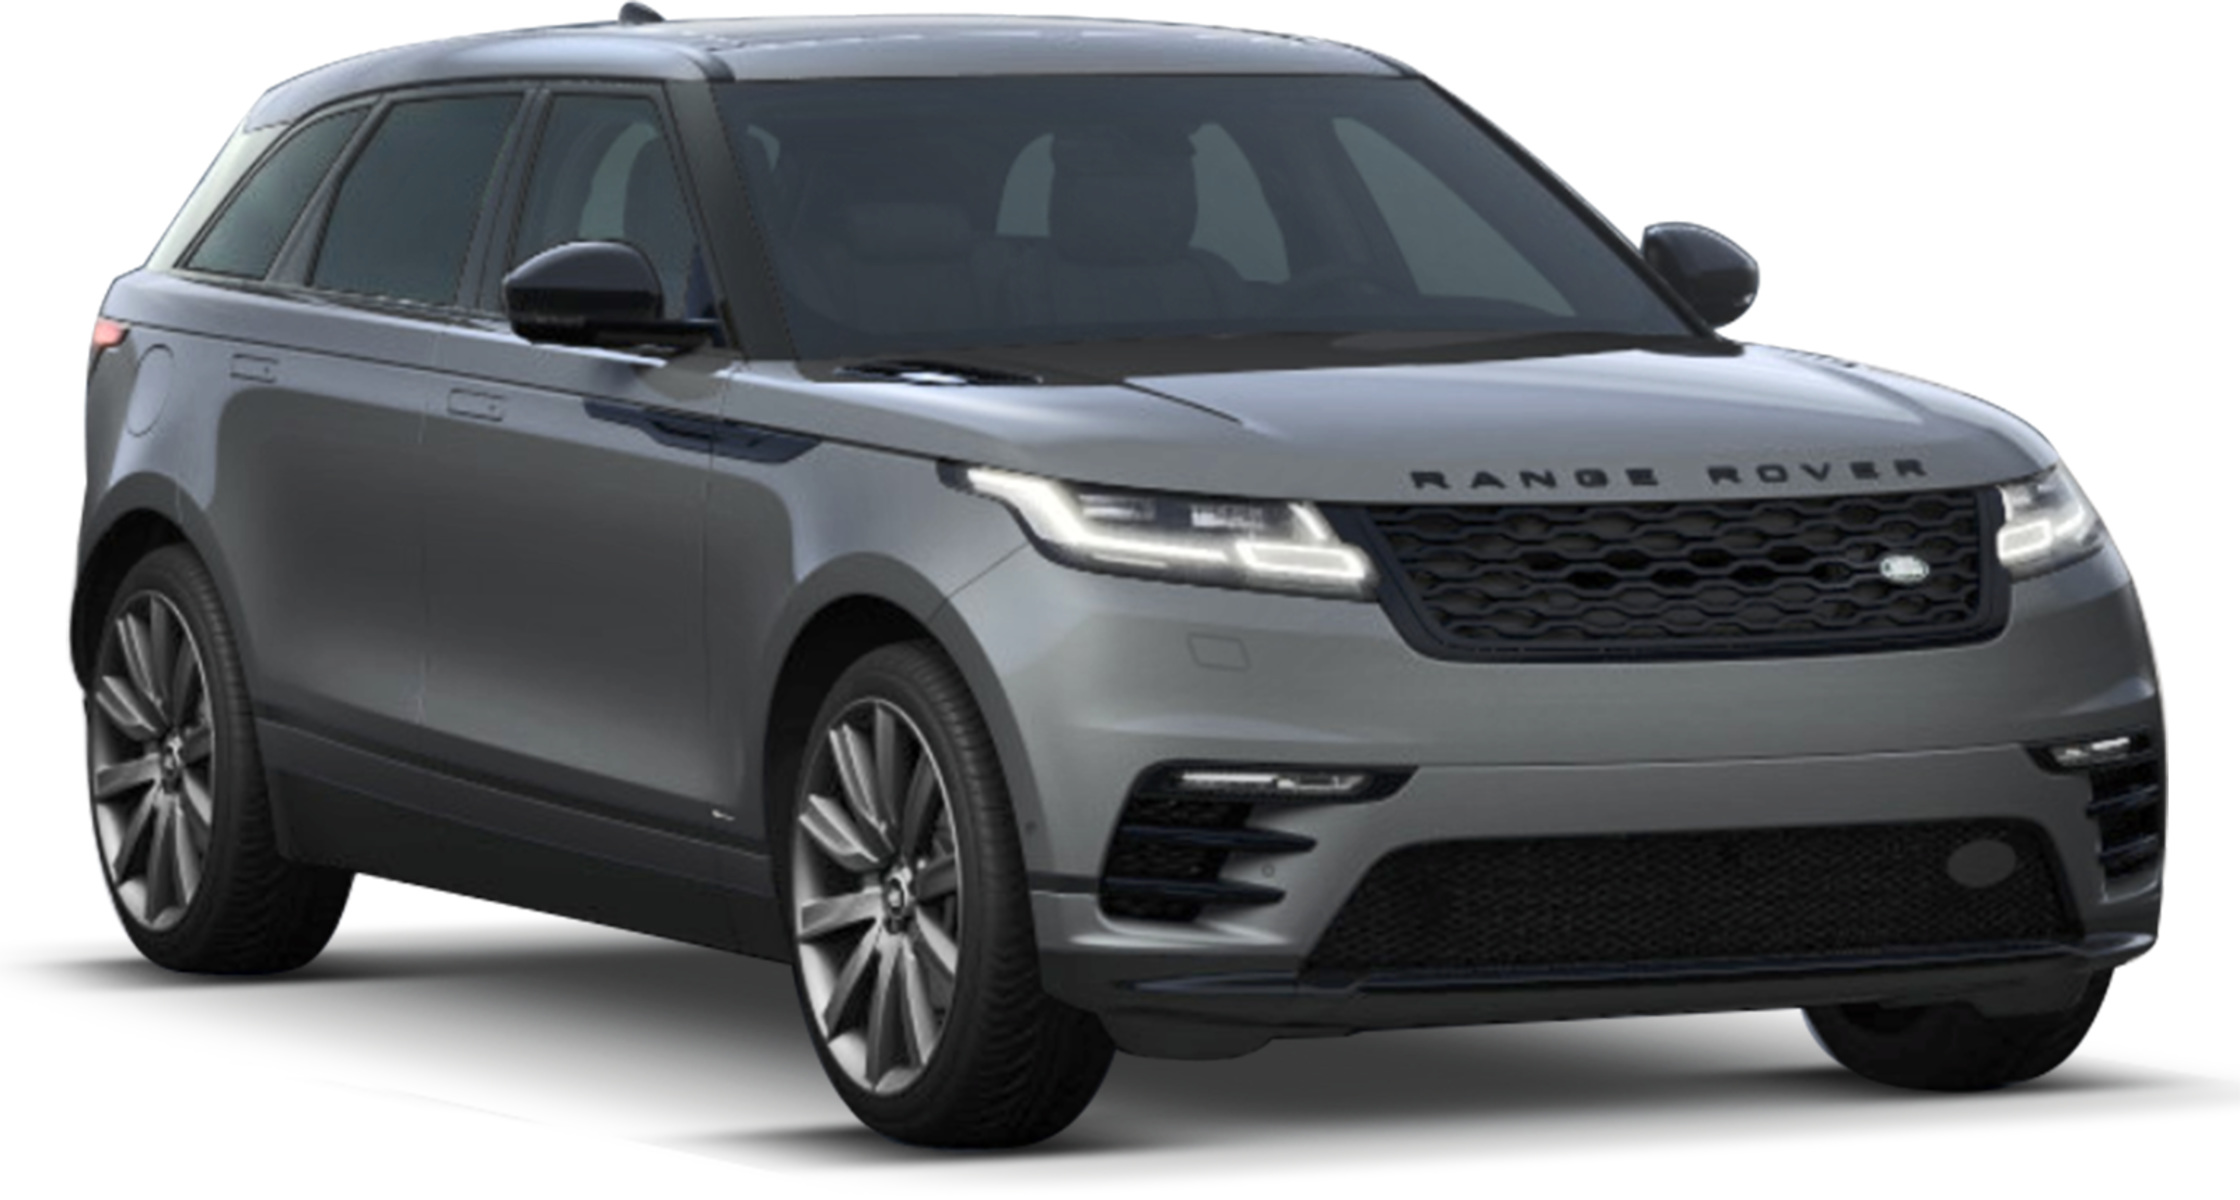 listino land rover range rover velar prezzo scheda tecnica consumi foto. Black Bedroom Furniture Sets. Home Design Ideas